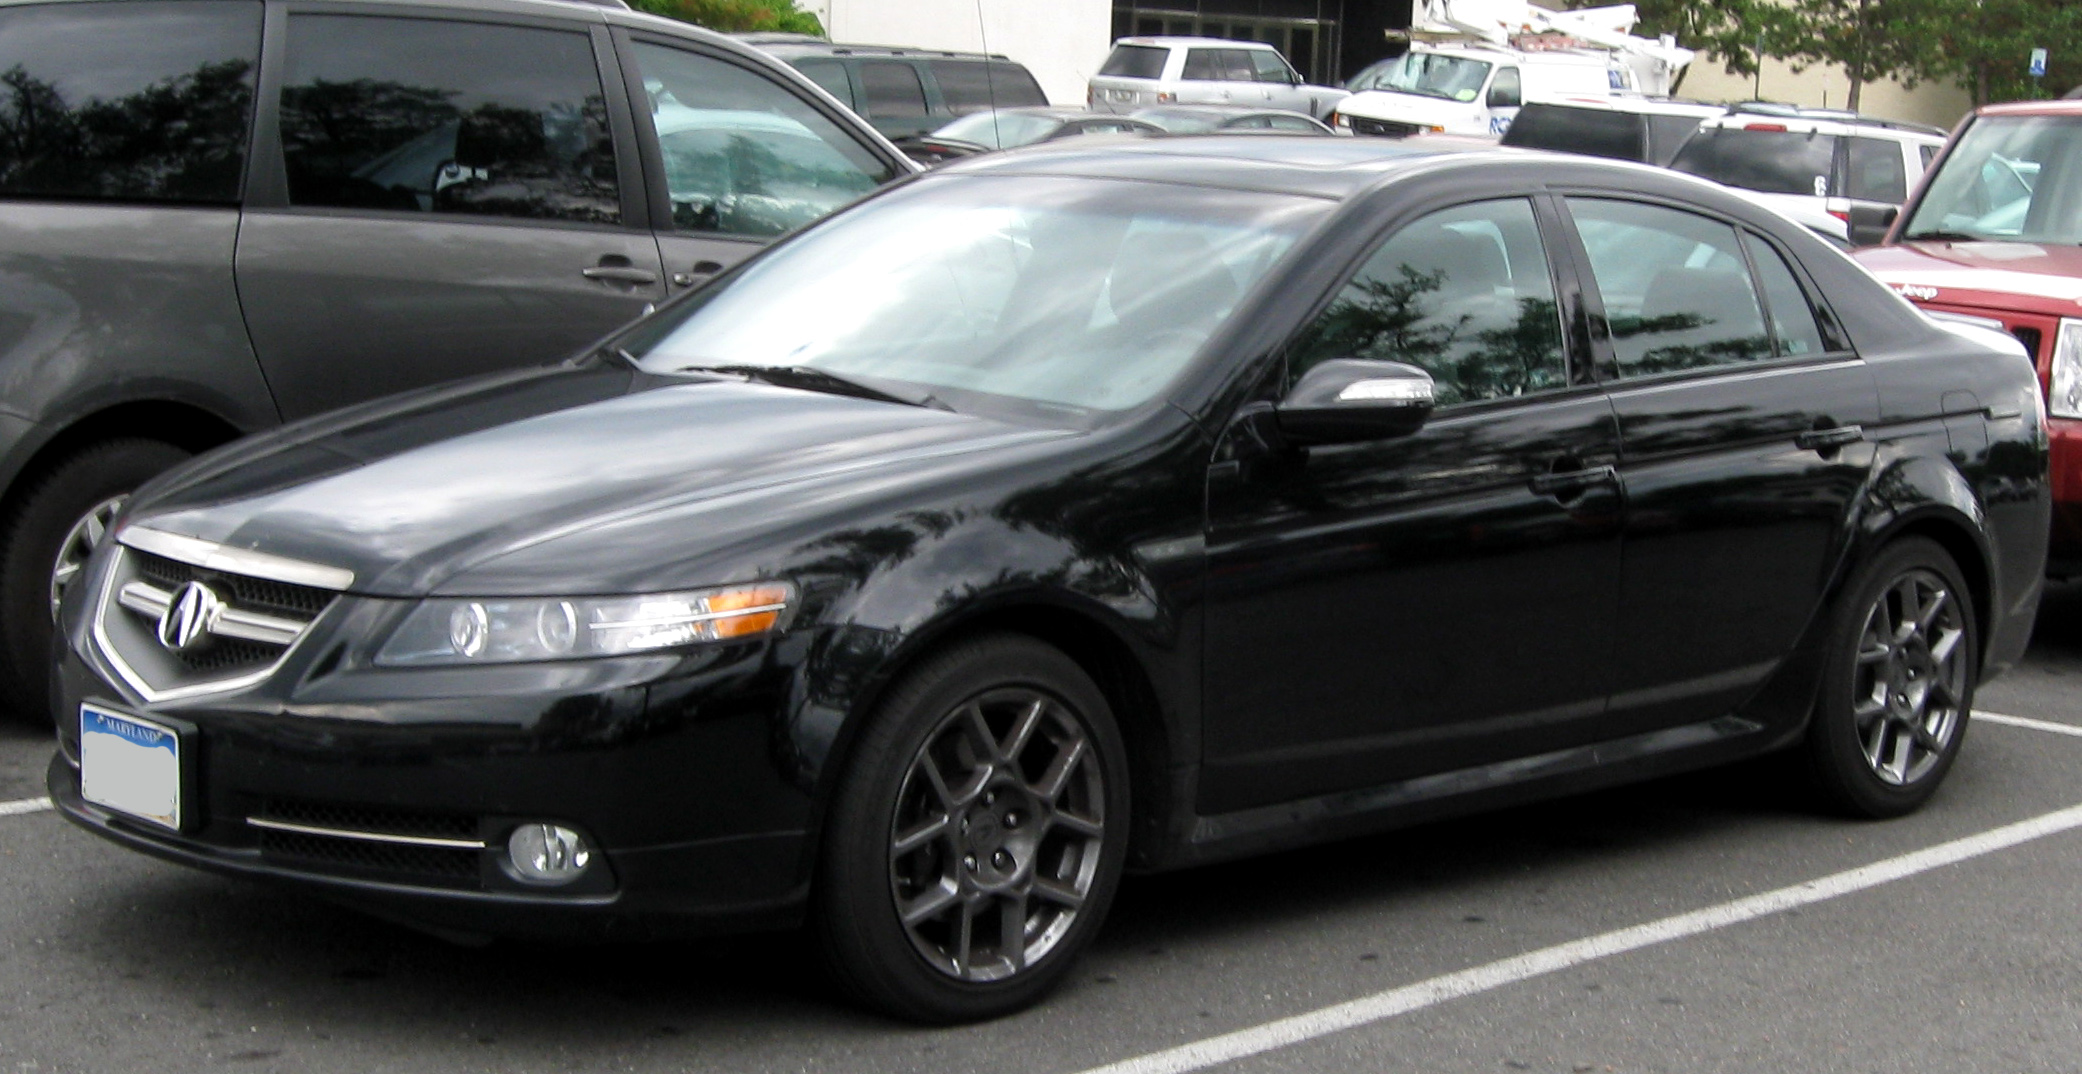 File:Acura TL Type S -- 08-21-2009.jpg - Wikimedia Commons